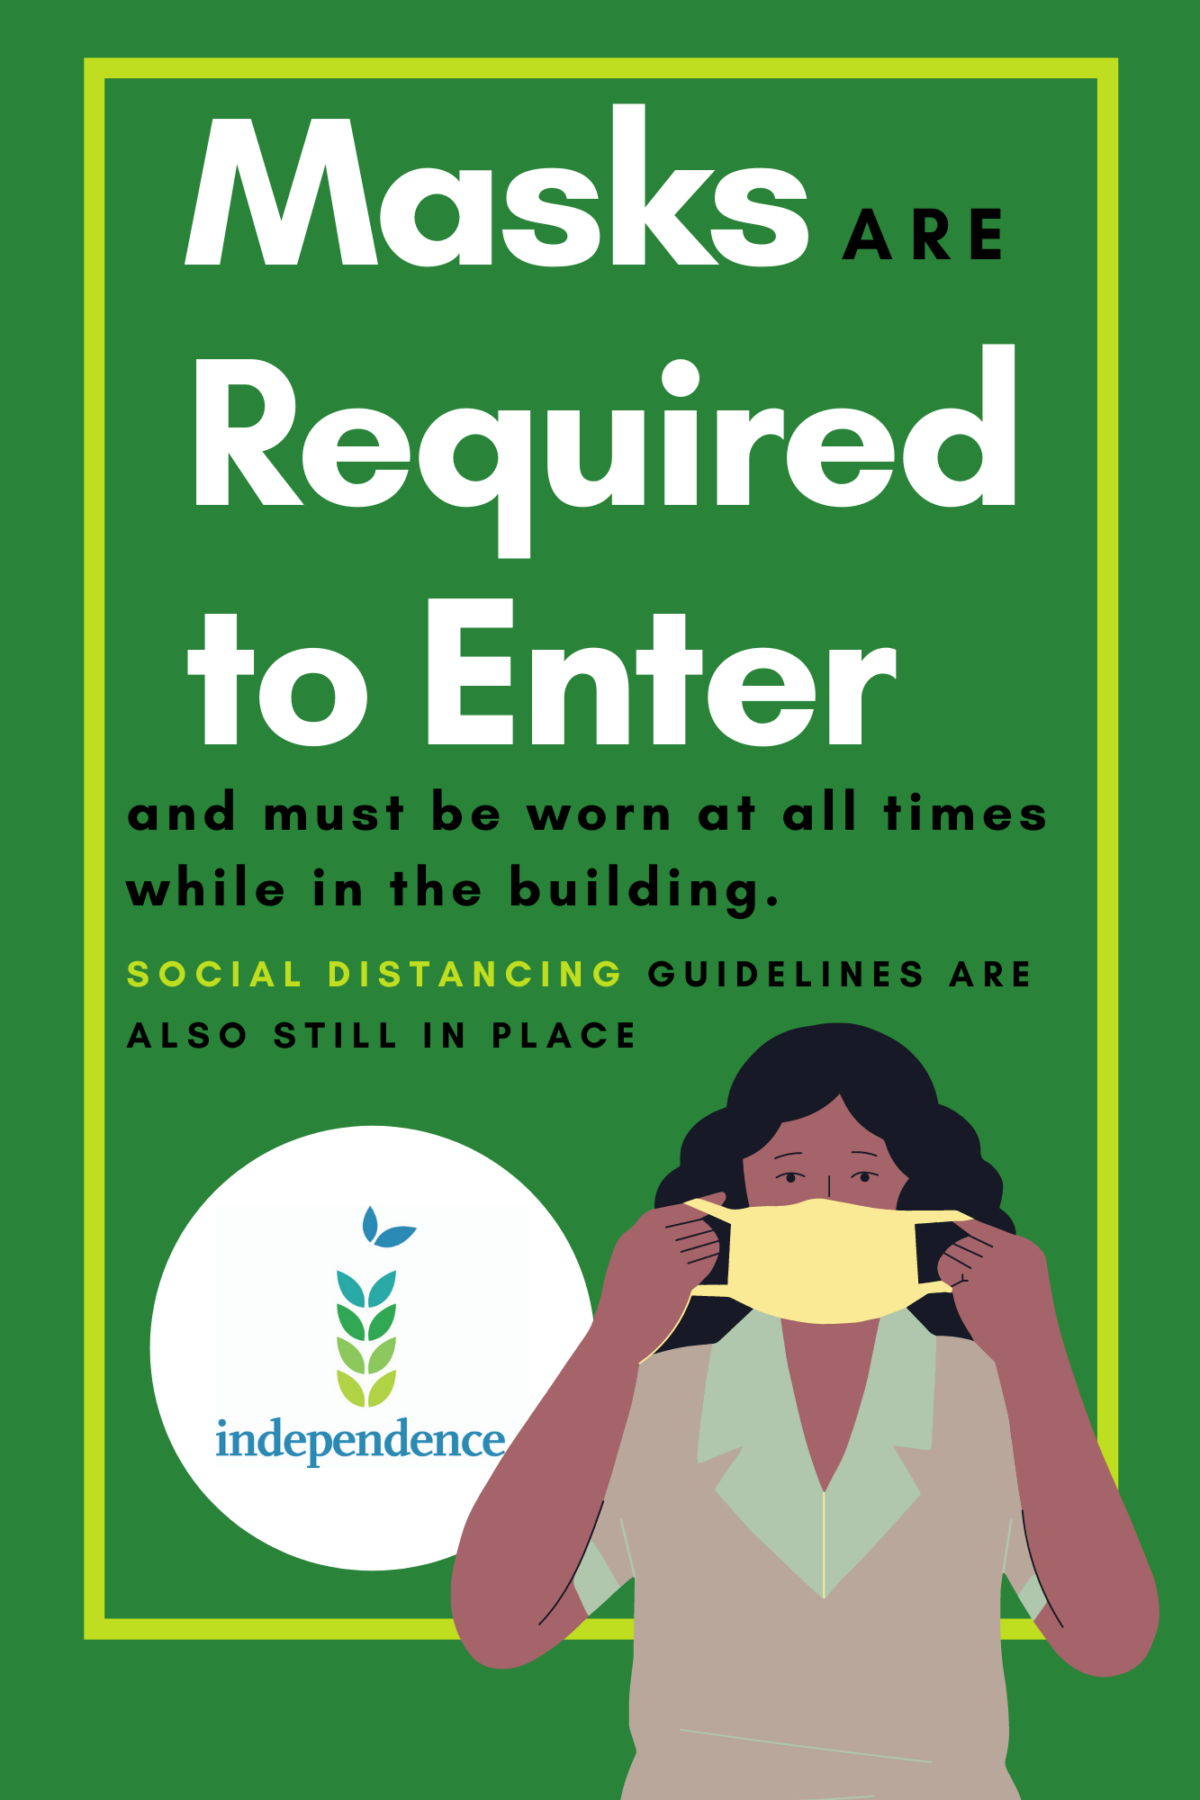 Informational image with dark skinned female putting on a yellow mask with text Masked are Required to Enter